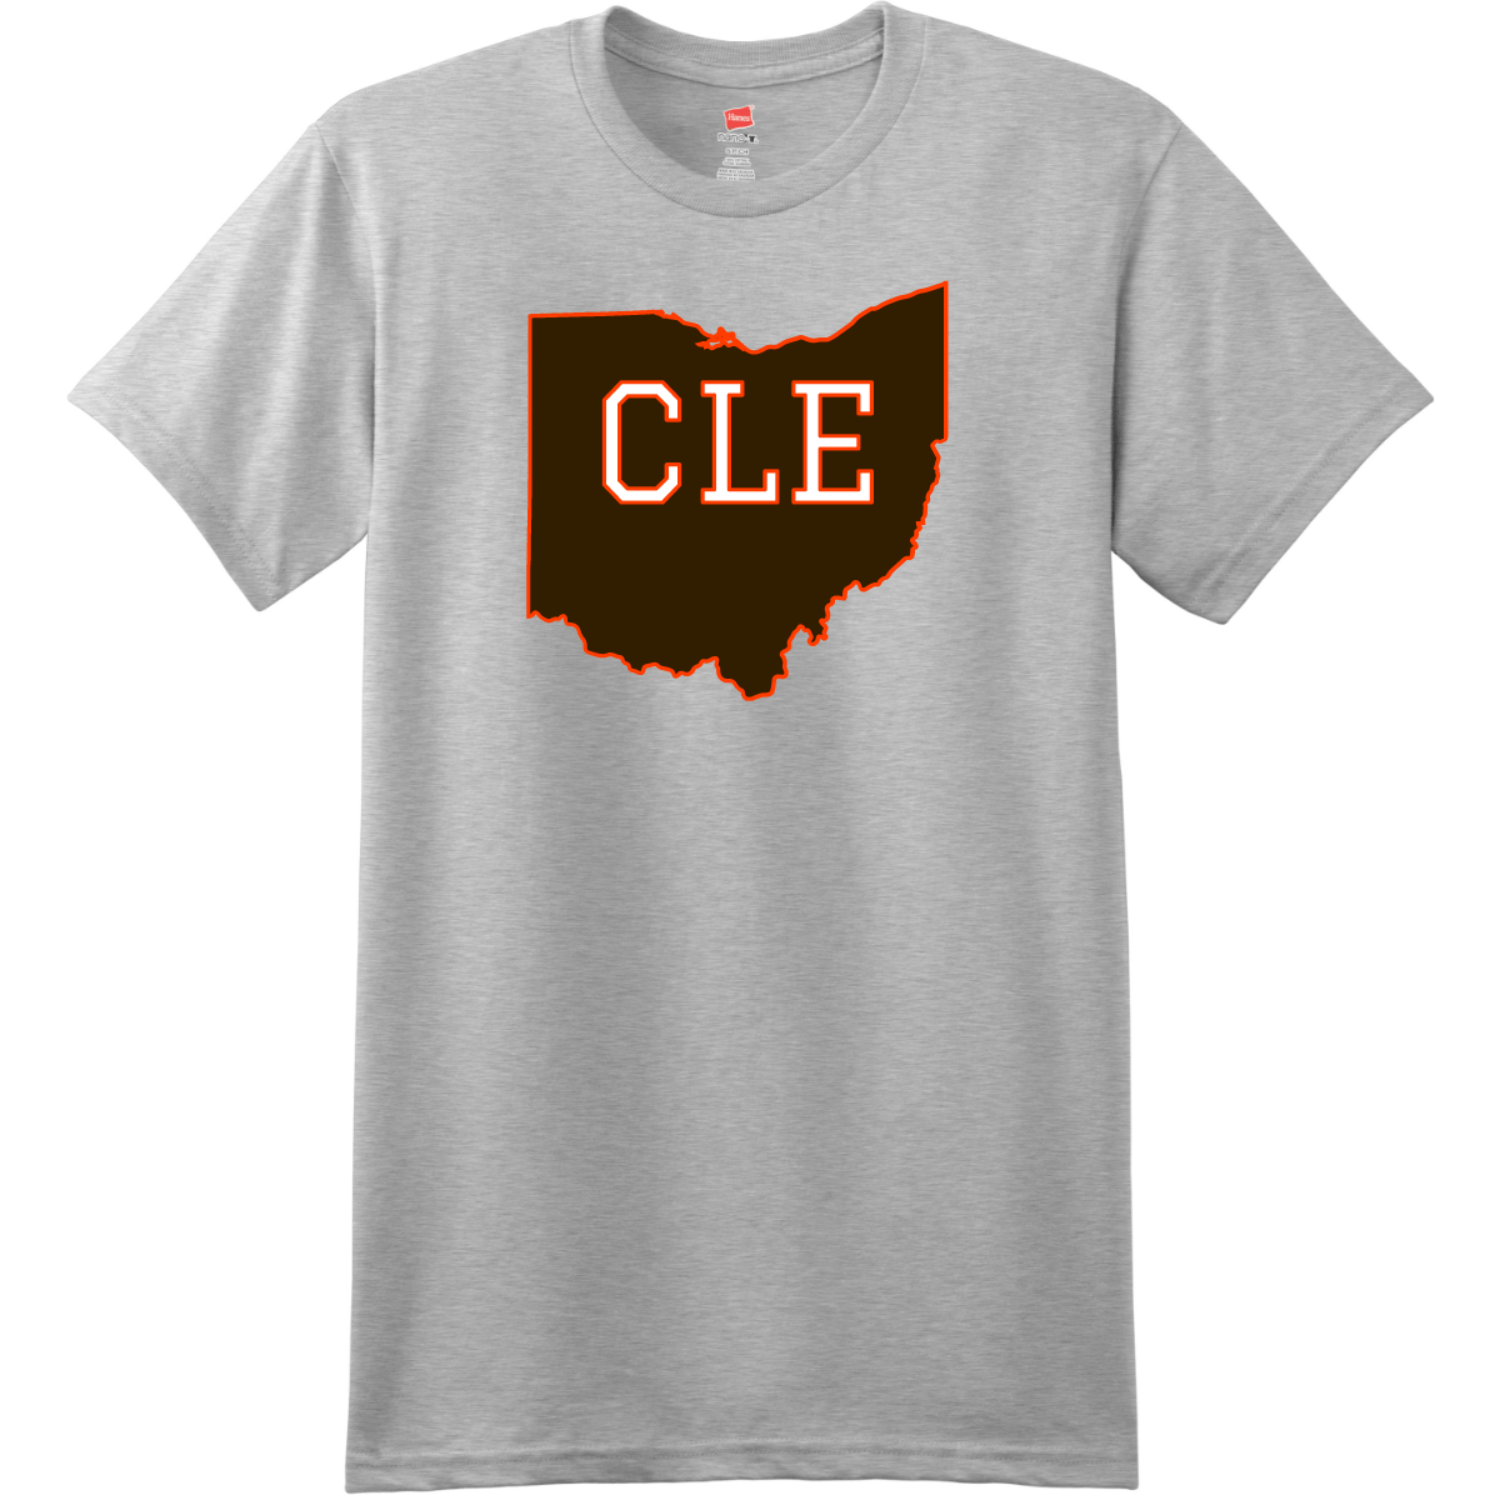 CLE Cleveland Ohio State T Shirt Ash Hanes Nano 4980 Ringspun Cotton T Shirt